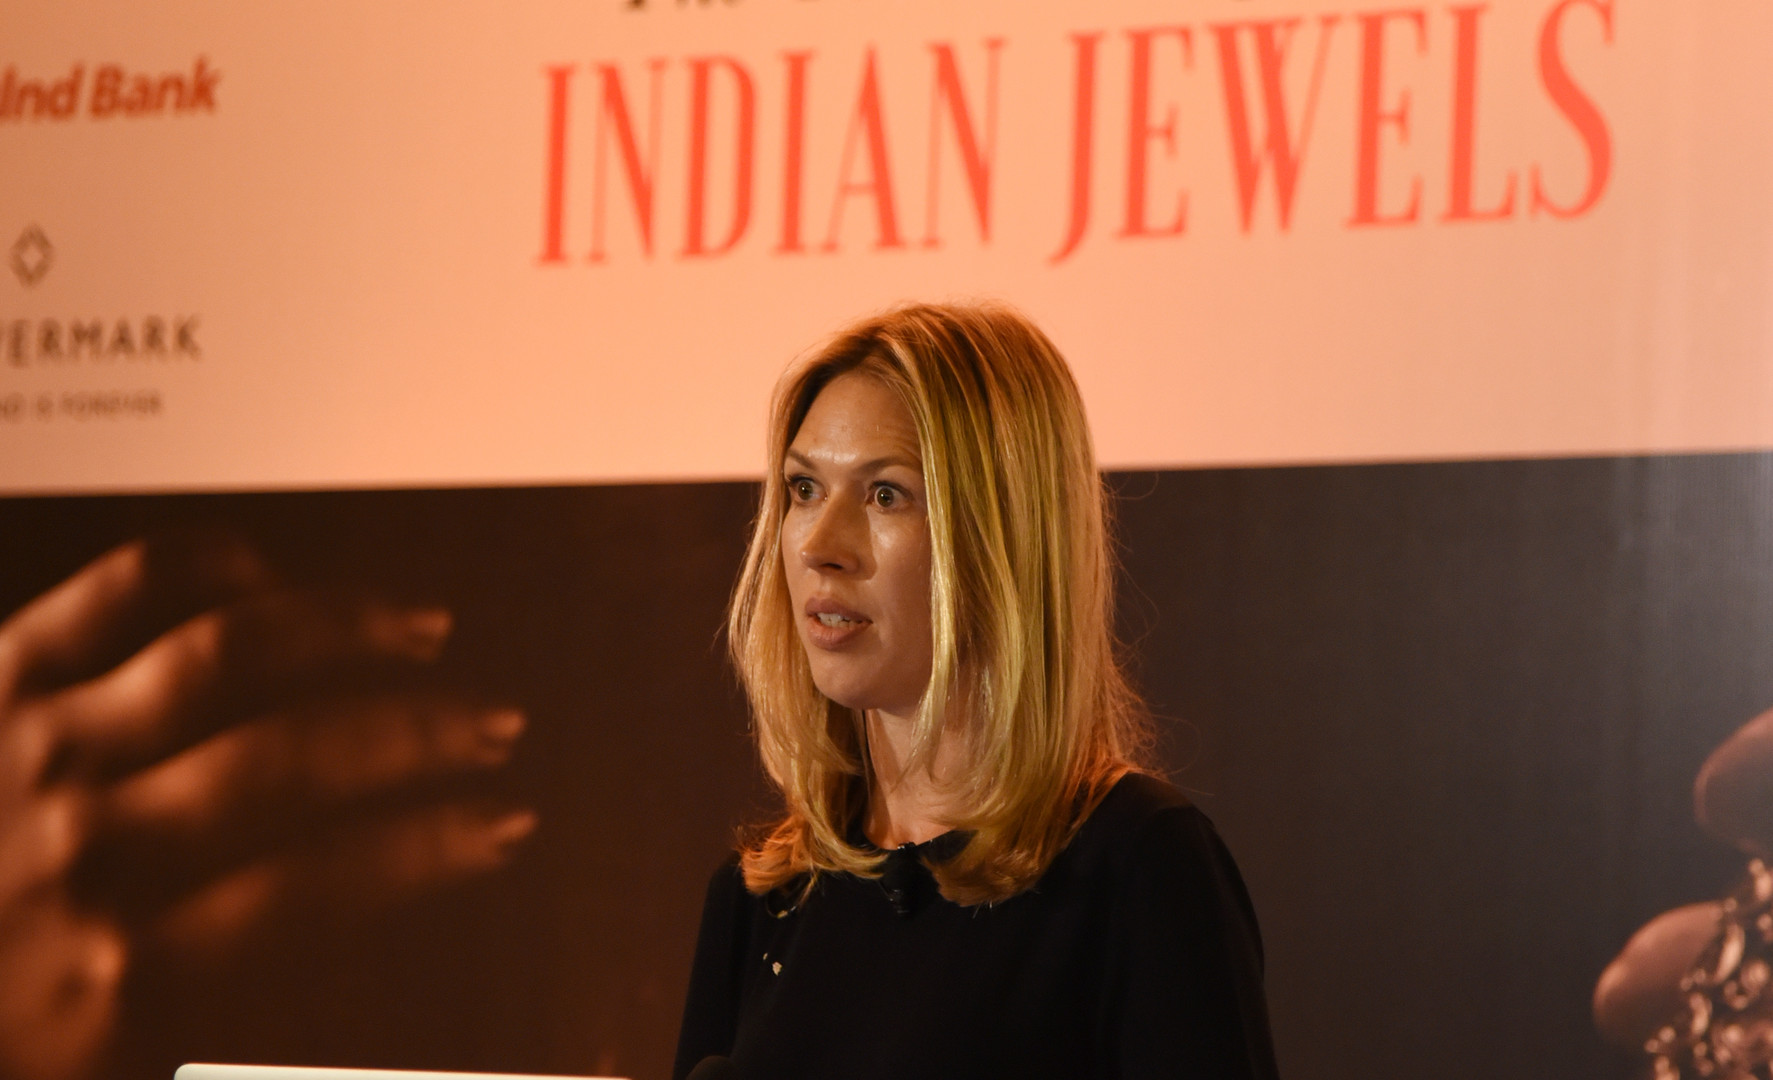 Francesca Cartier-Brickell's talk illustrated Cartier's India connection using the unpublished letters and diaries of her great-grandfather, Jacques Cartier.